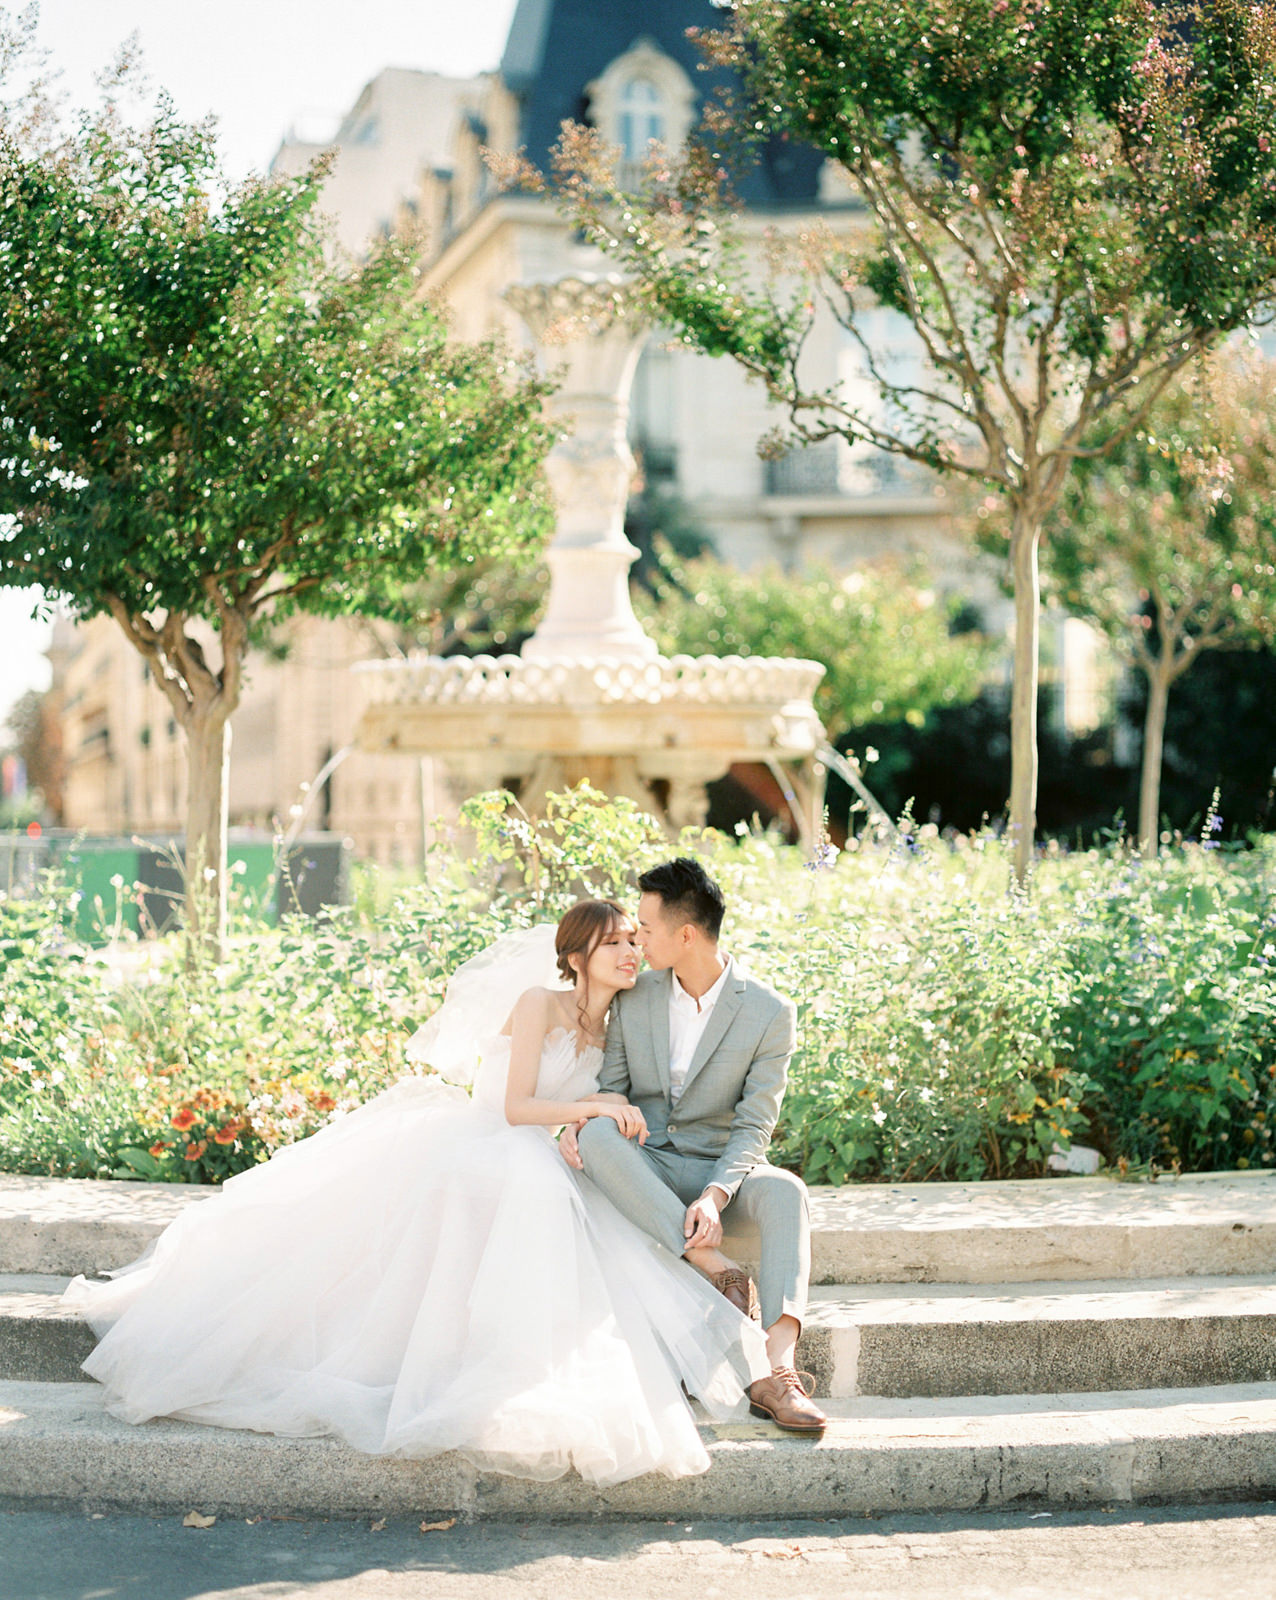 Paris France Fine Art Film Wedding Photographer CHYMO & MORE